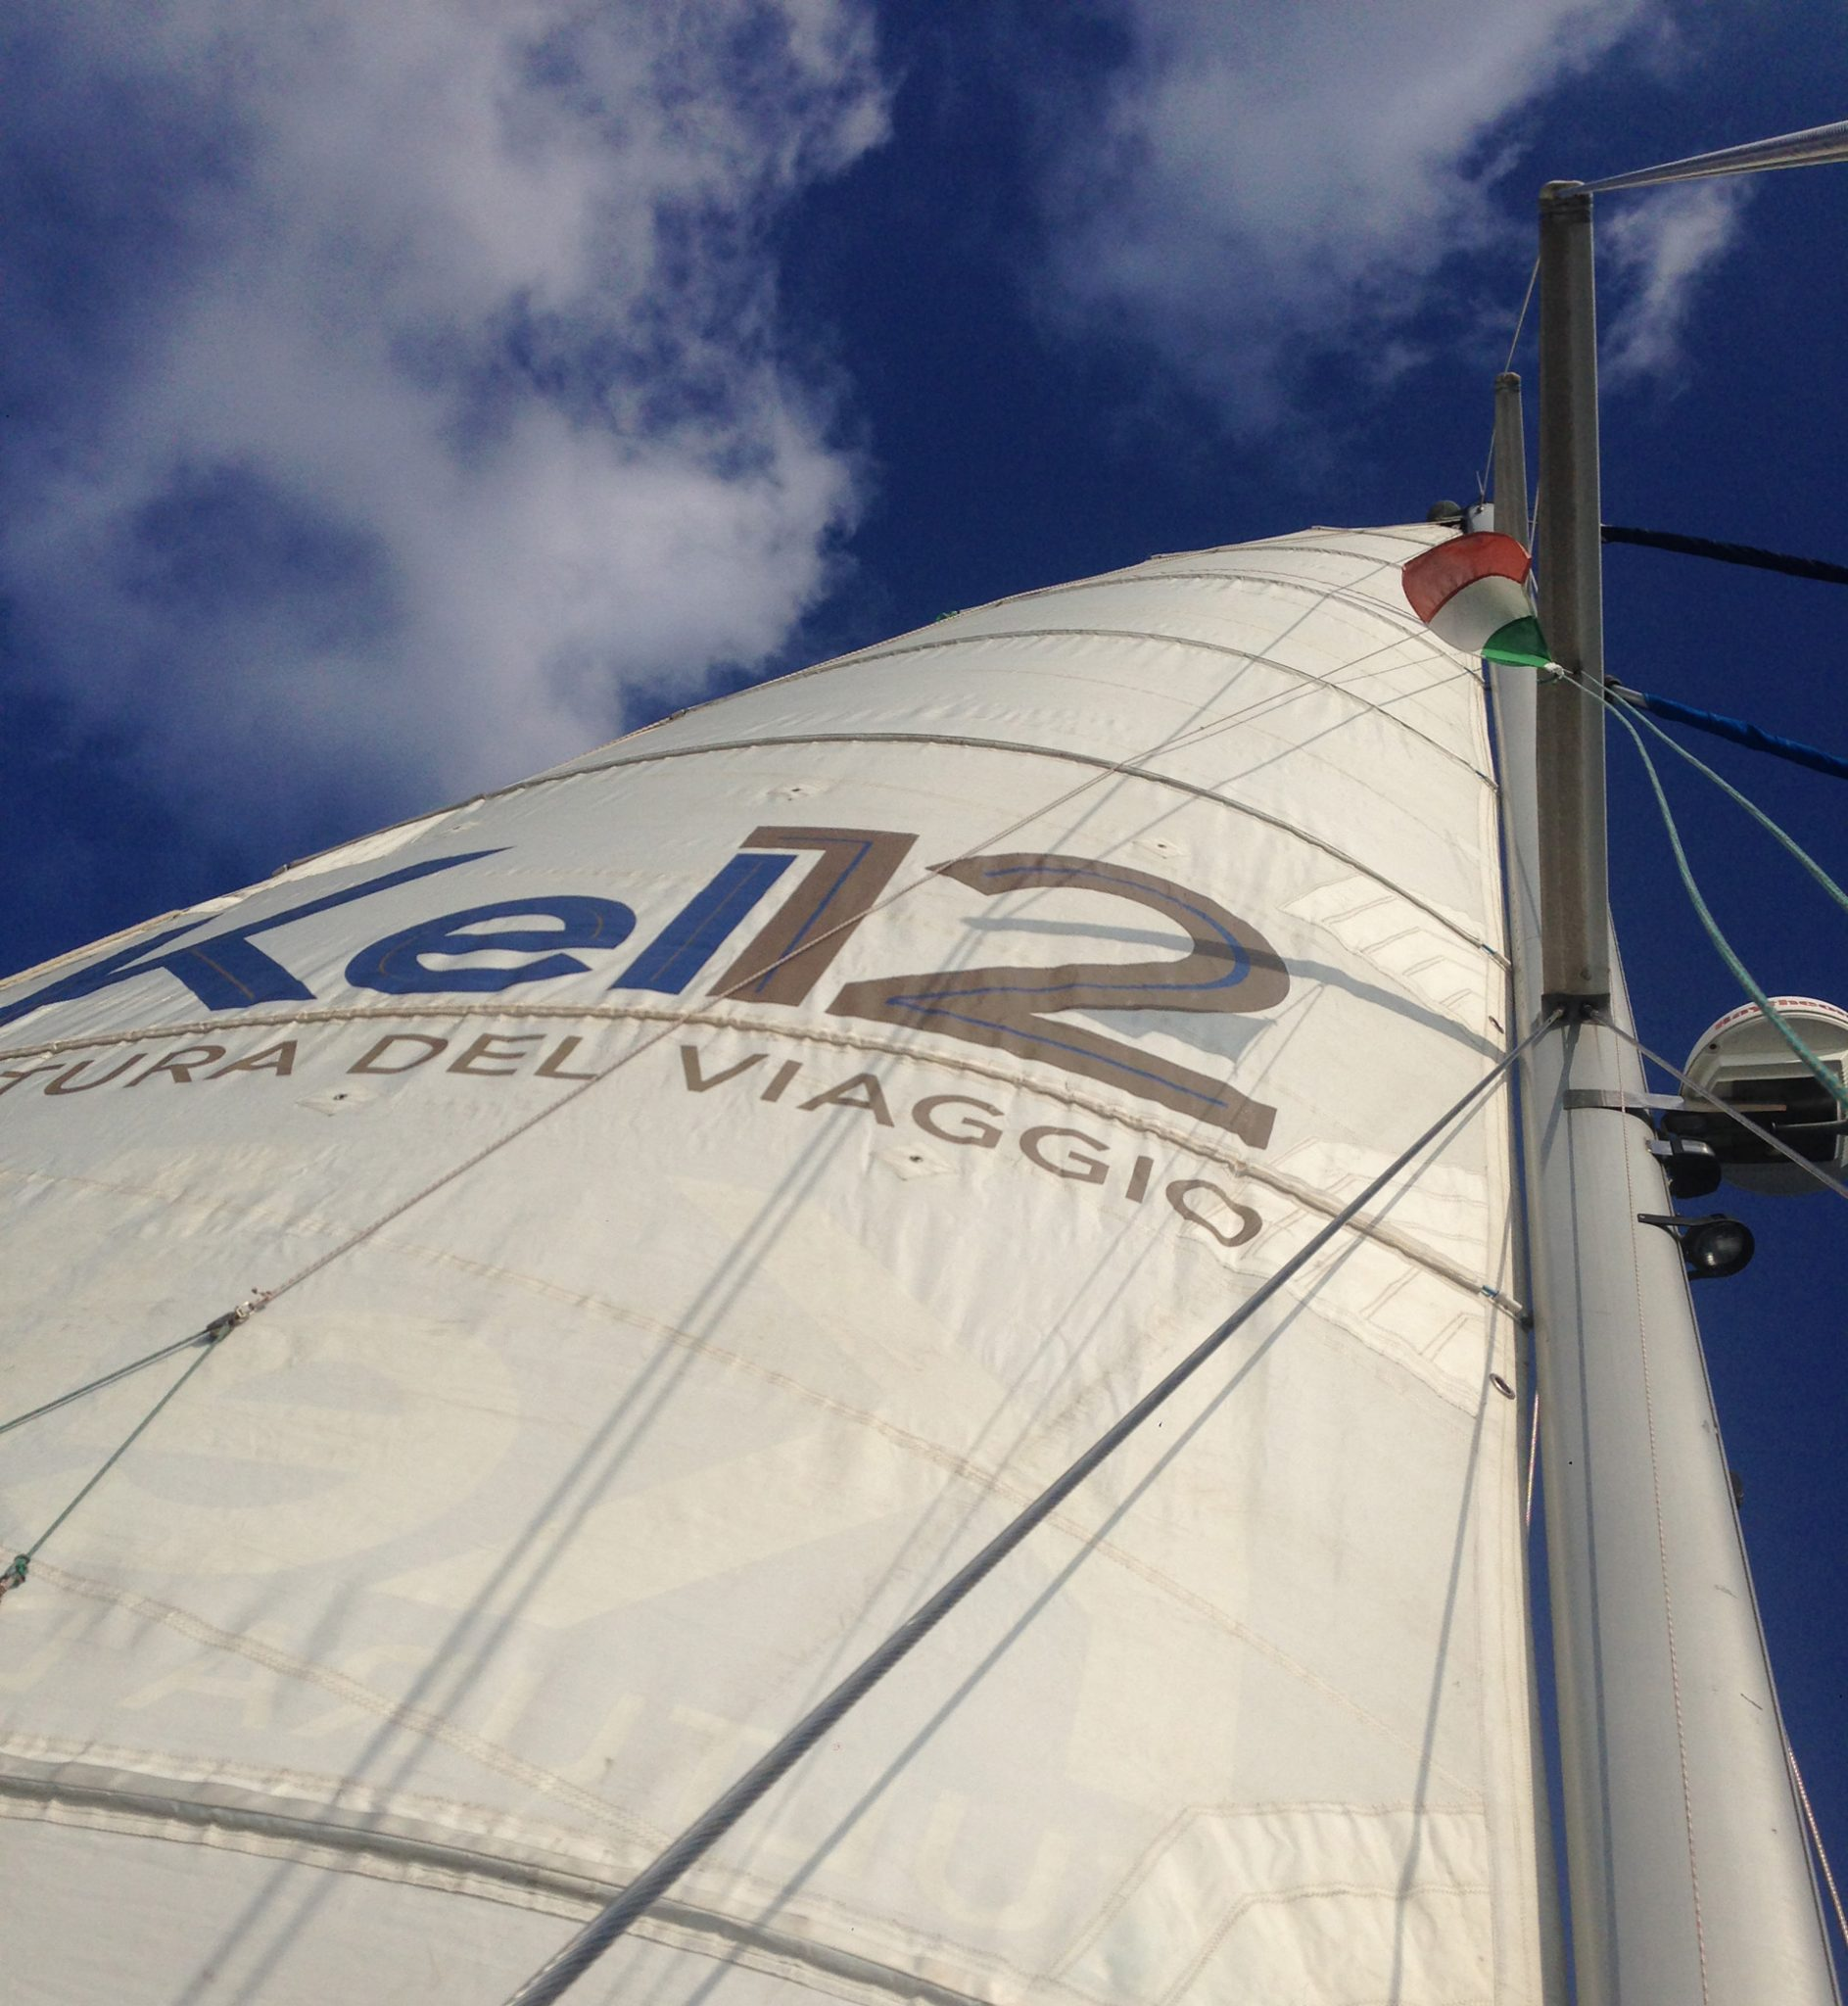 dream1-sailing-charter-cruise-liguria-genova-kel12-1